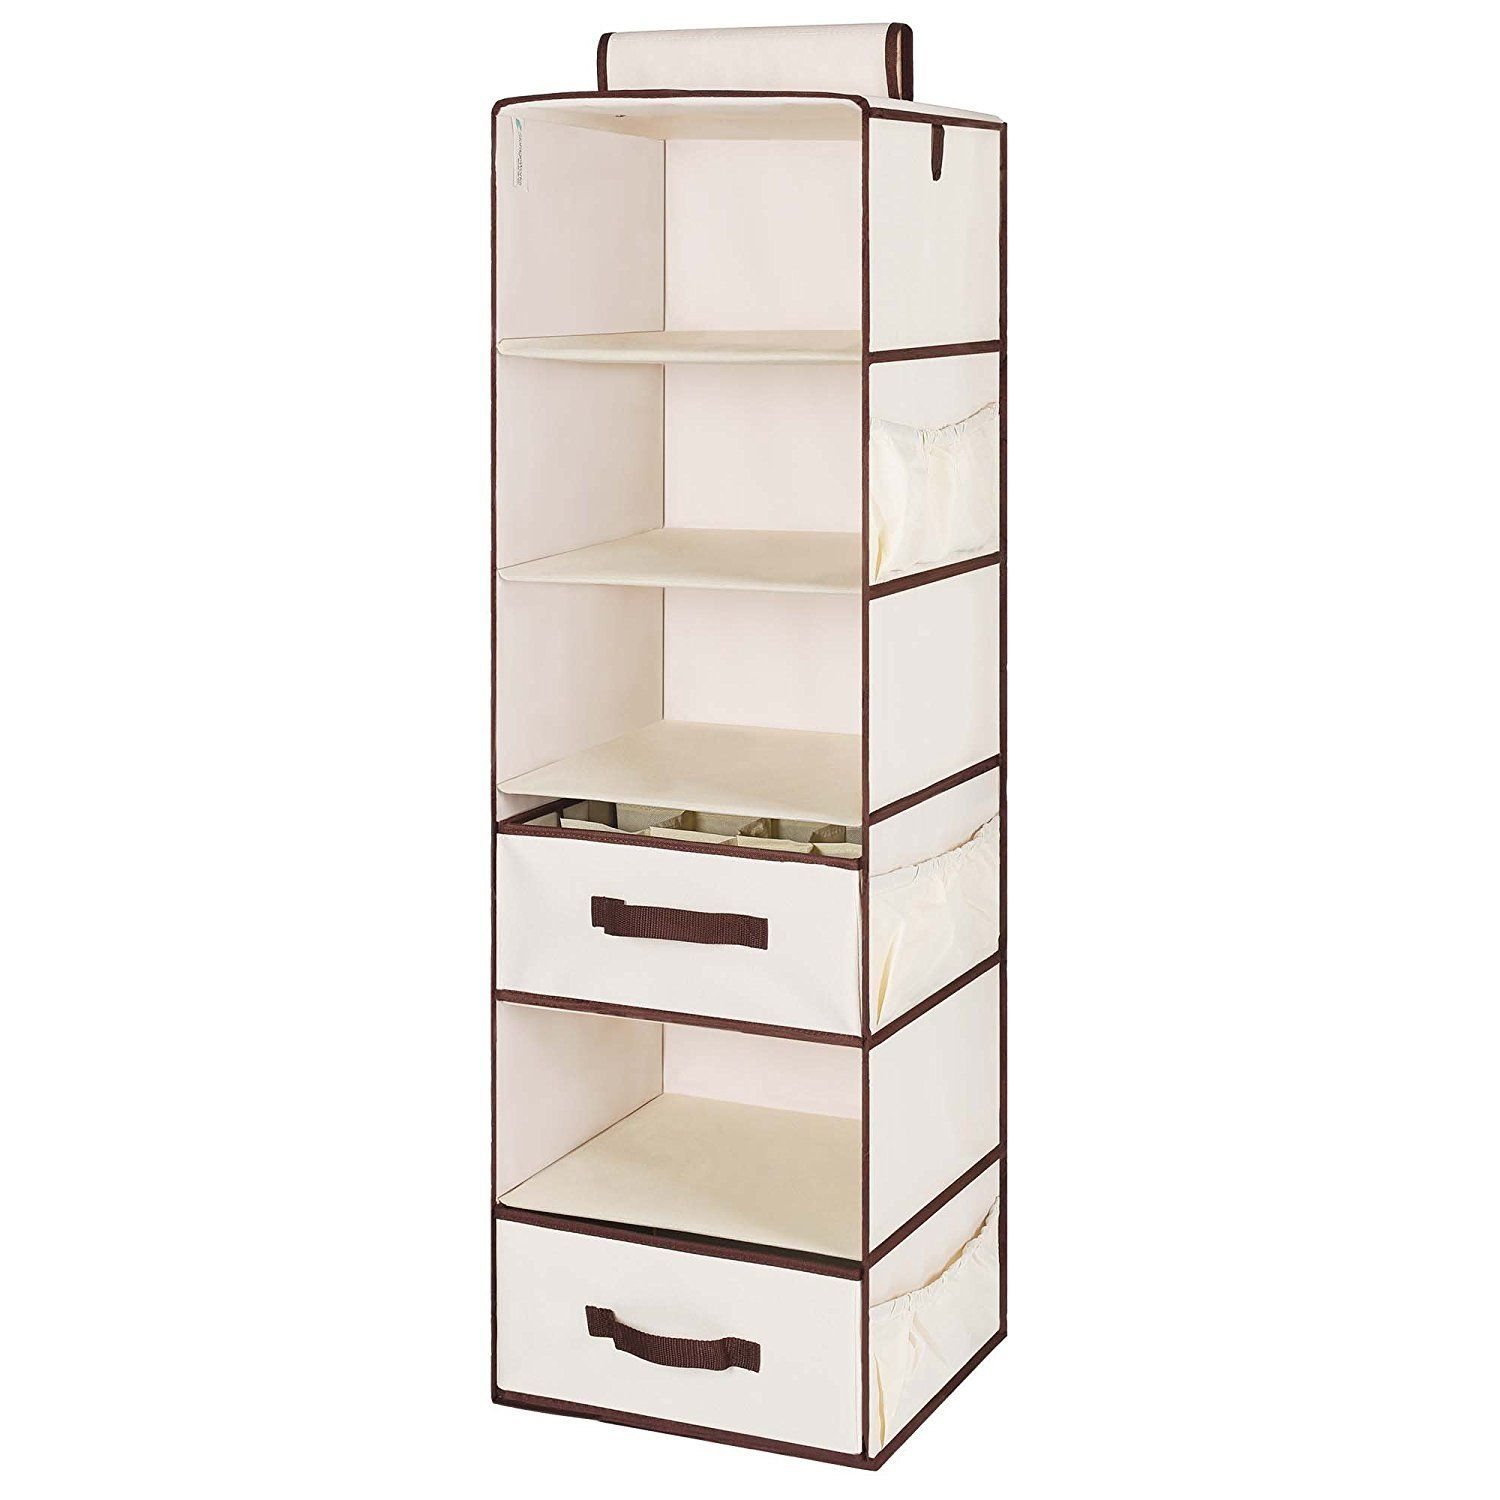 remarkable hanging design organizers closet pic drawers organizer home ideas storage with